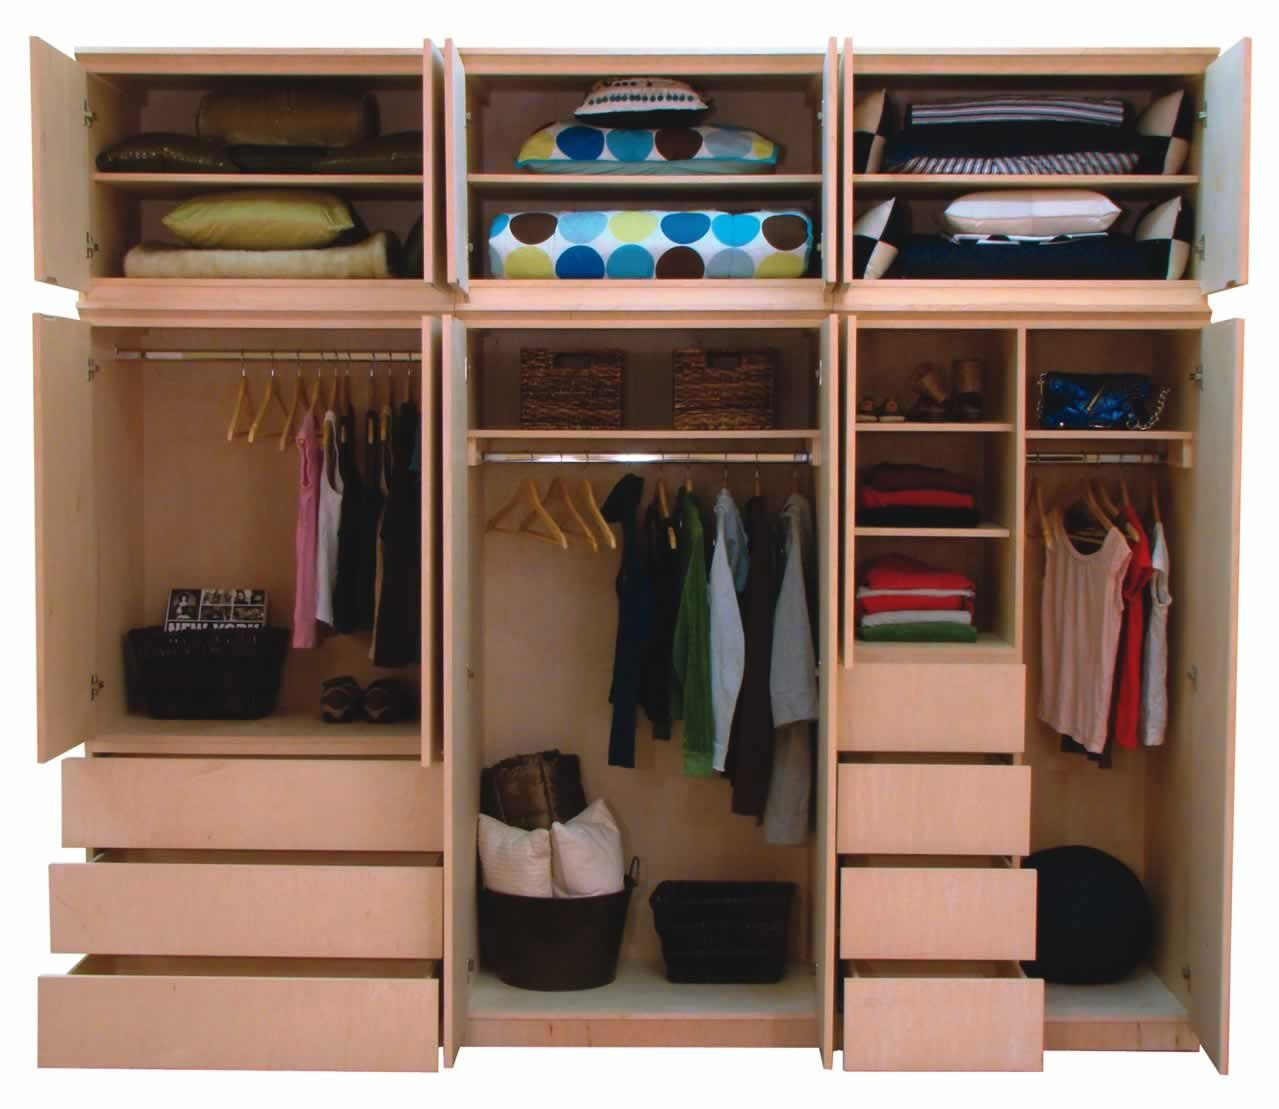 stunning simple closet design ideas images - design and decorating